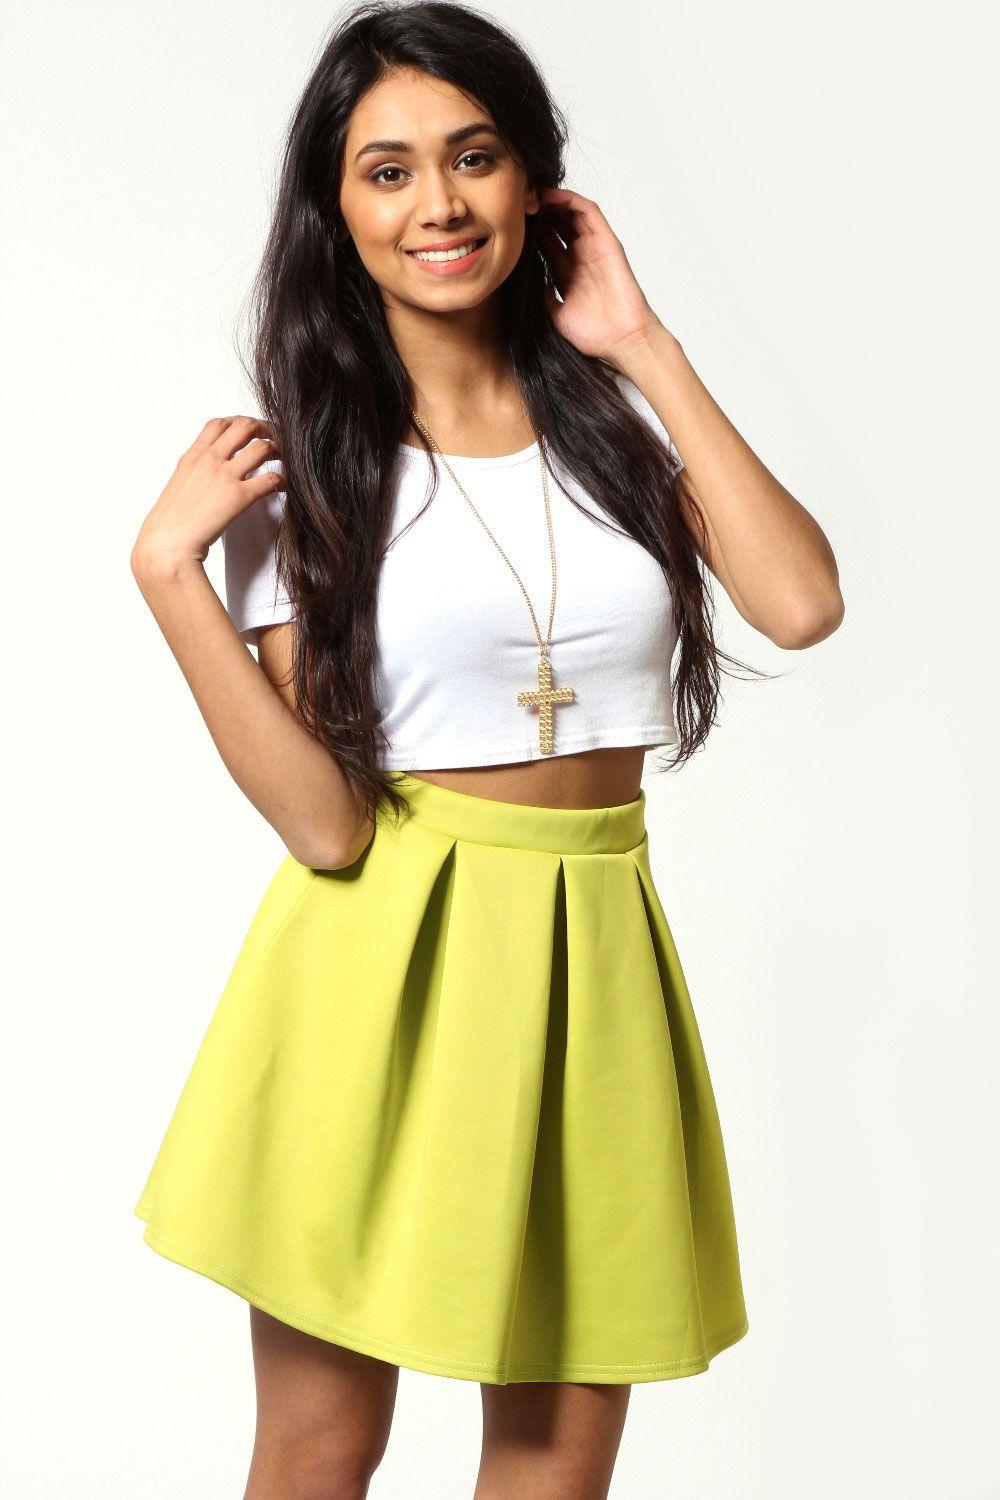 Fashion style Yellow Neon skater skirt pictures for girls